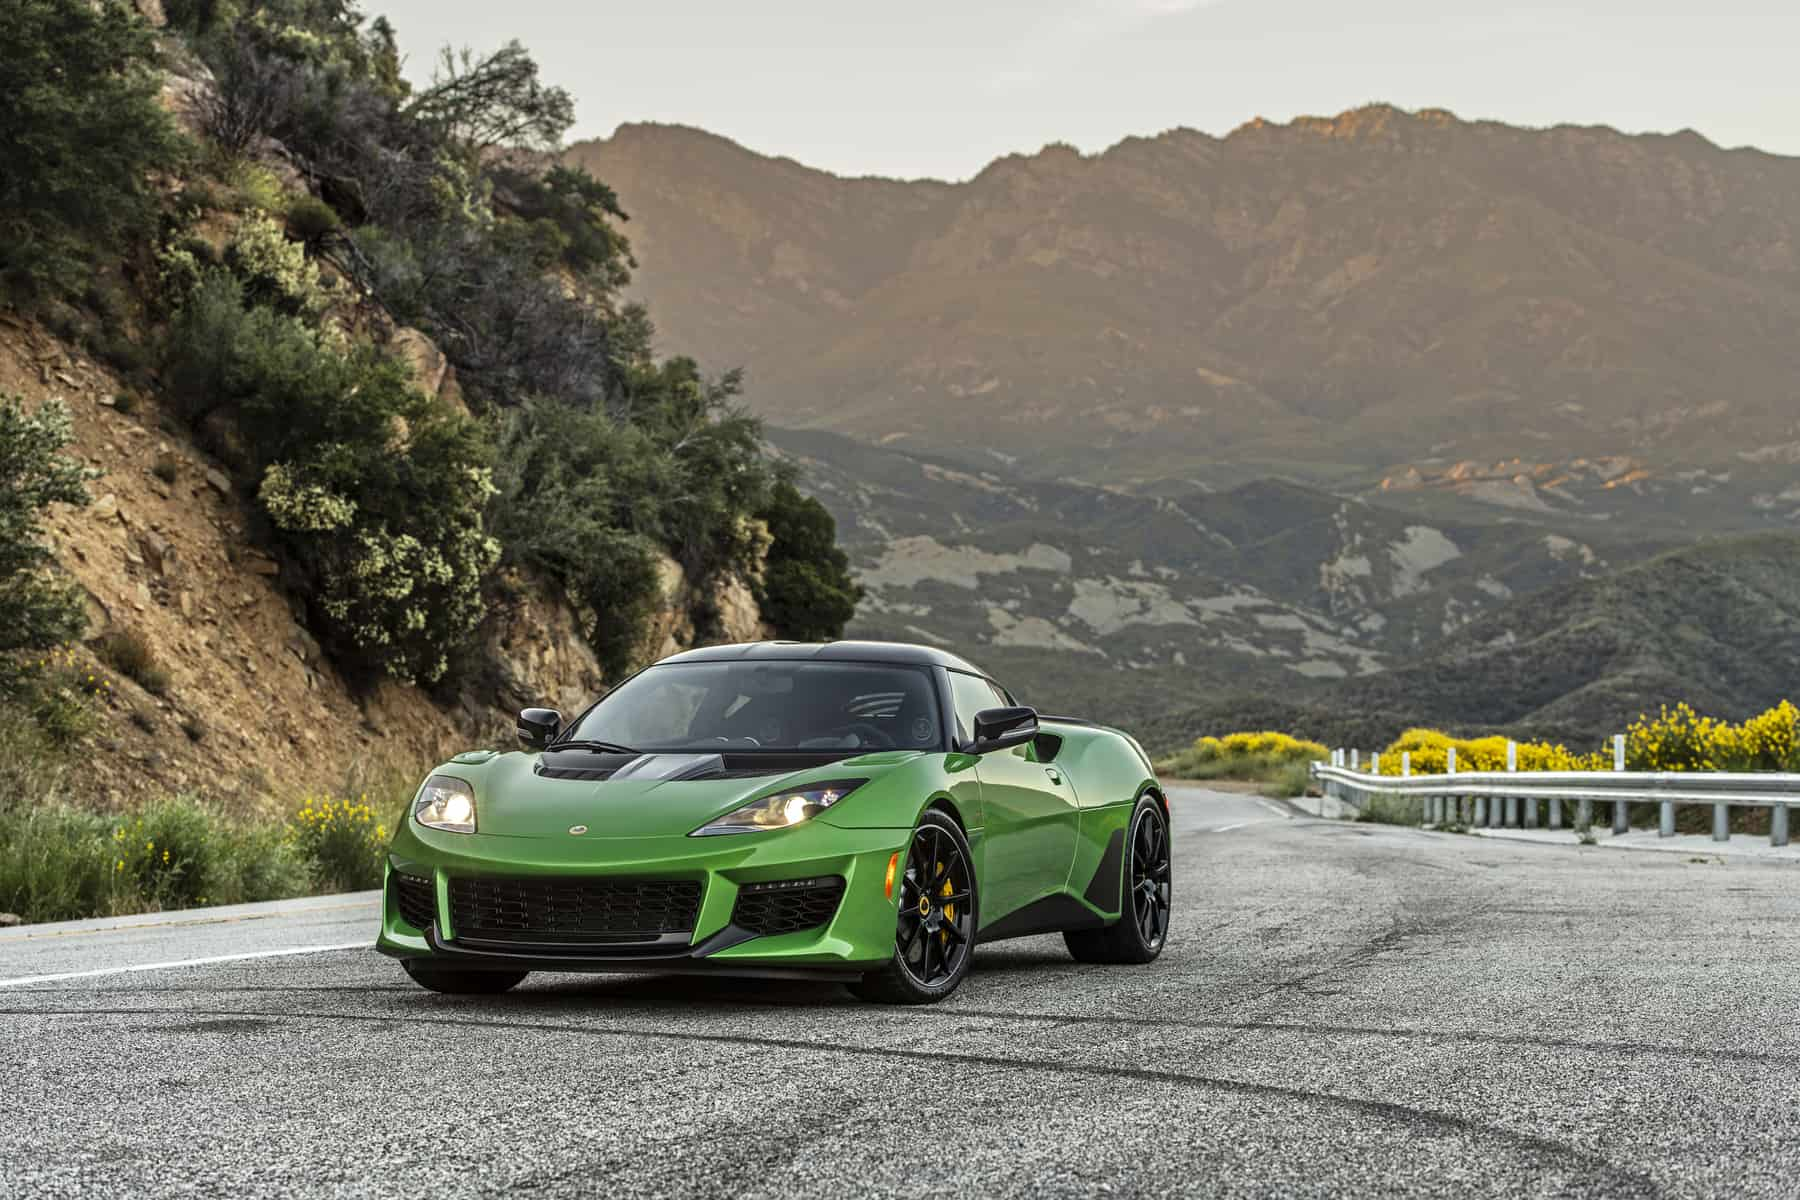 The new Lotus Evora GT is Lighter, Faster and Even More Amazing!